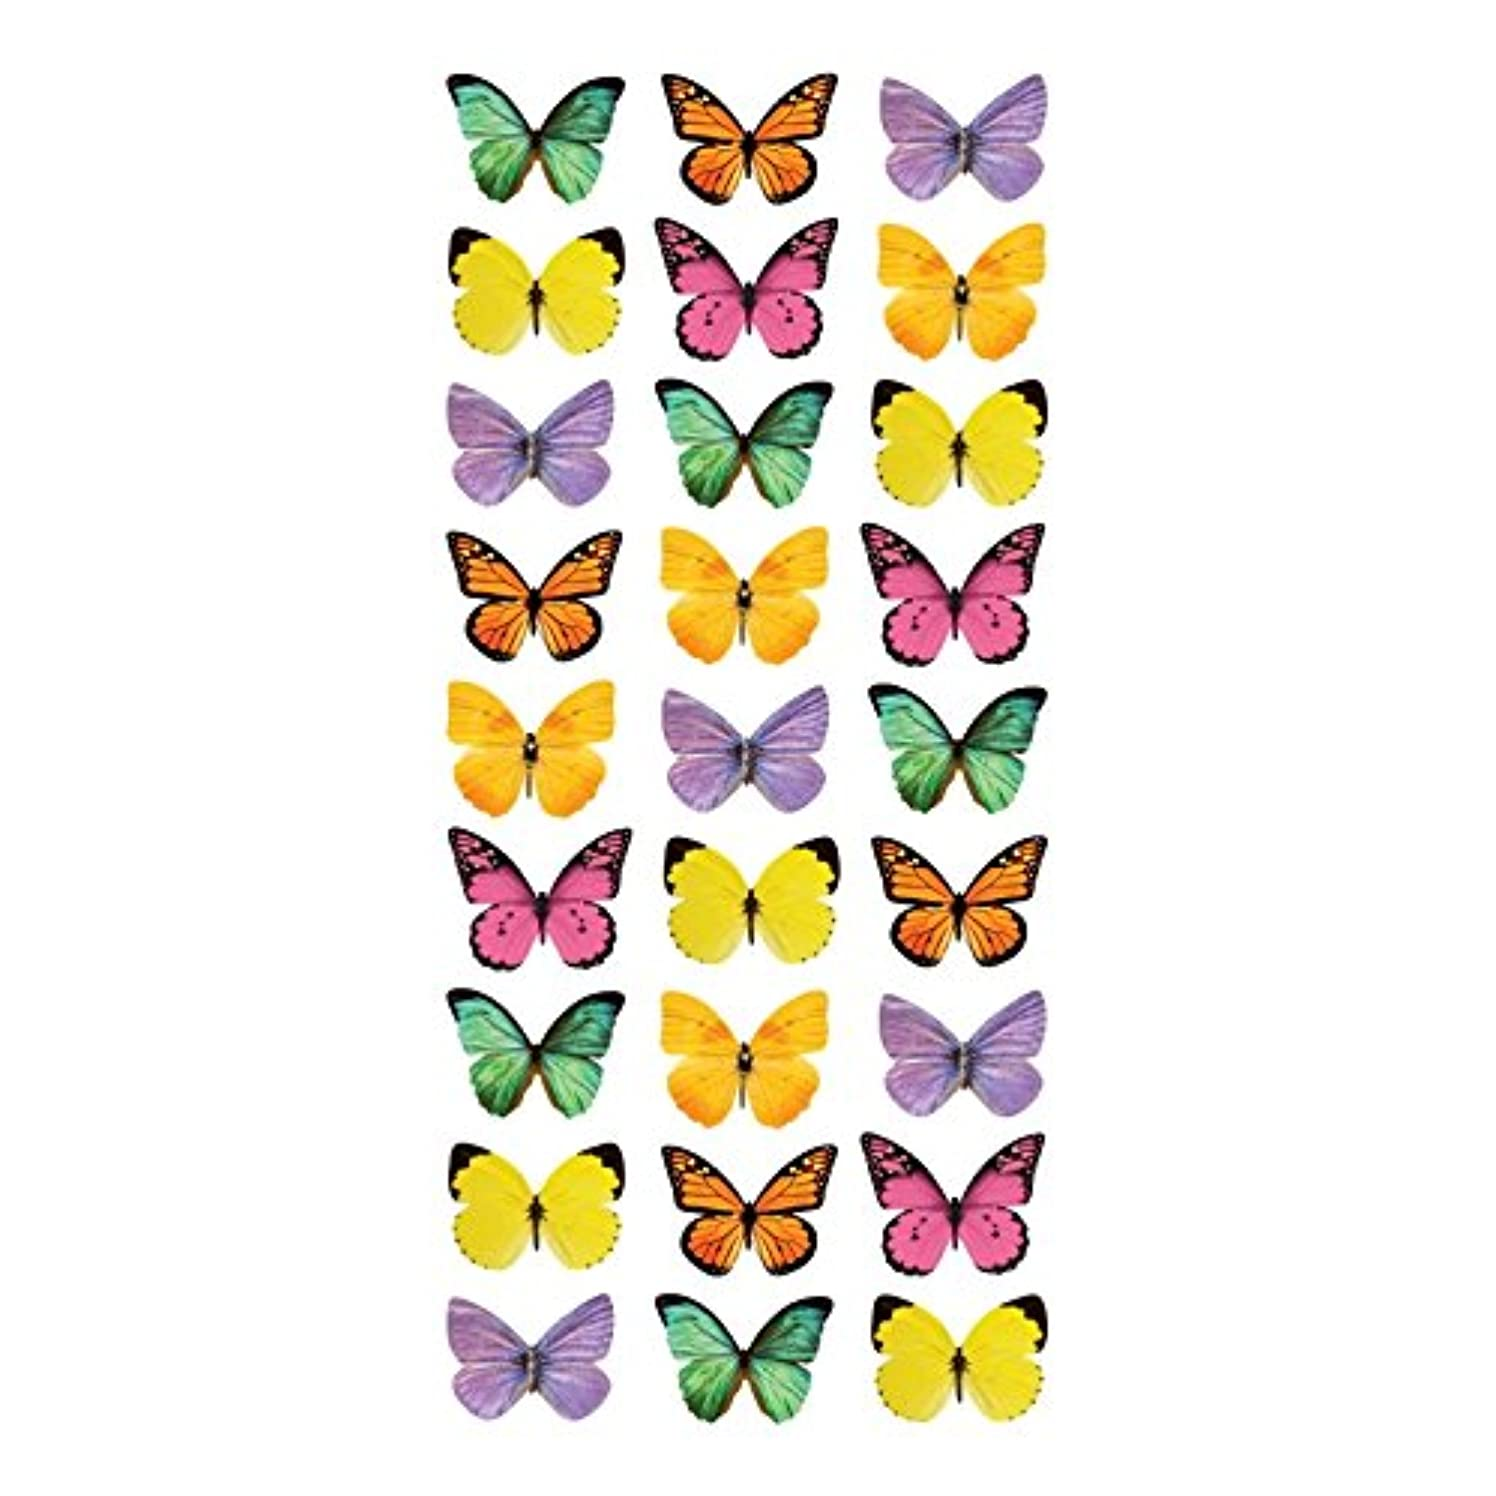 Paper House Productions STP-0050RTE Mini Mixed Butterflies Stickers, Puffy 1 Sheet